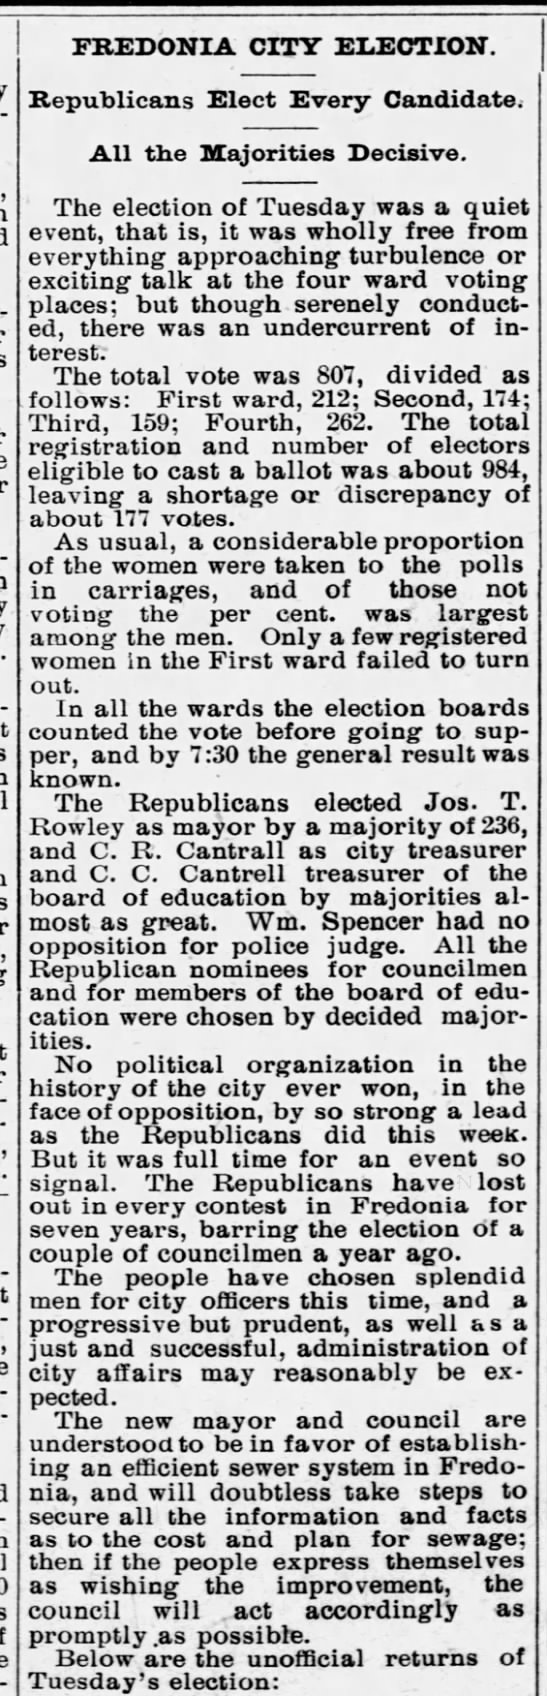 P P Belt 1907-04-05 City Council election results -